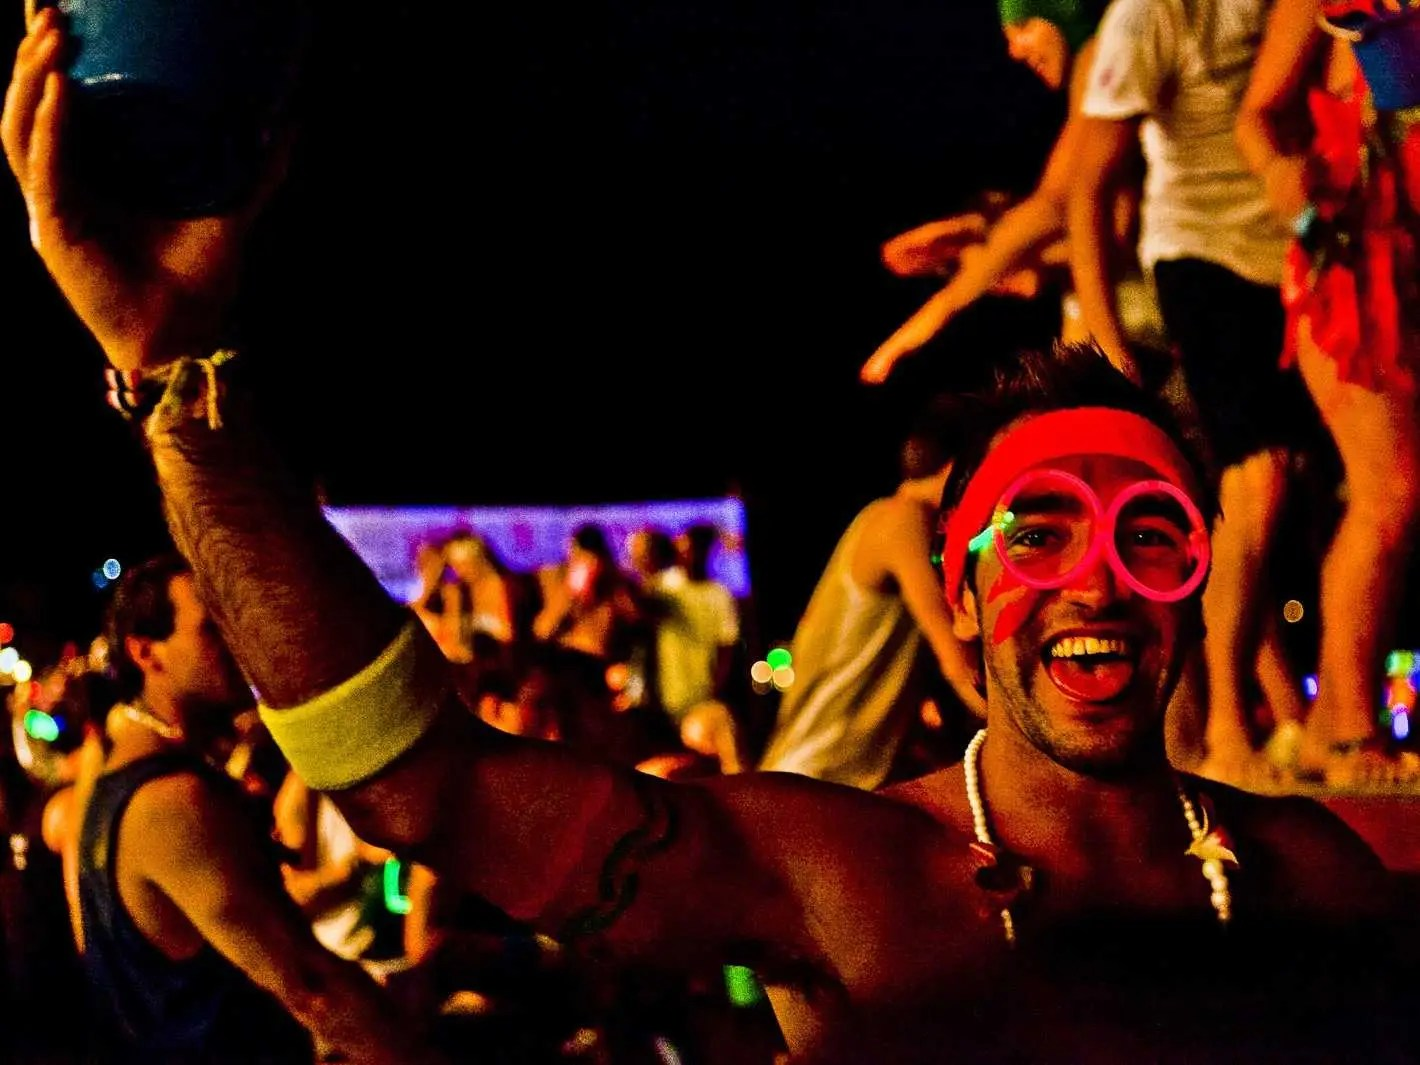 Dance the night away decked out in neon at one of the monthly full moon parties in Koh Phangan, Thailand. The beach rave starts at dusk and continues till the early hours of the morning.